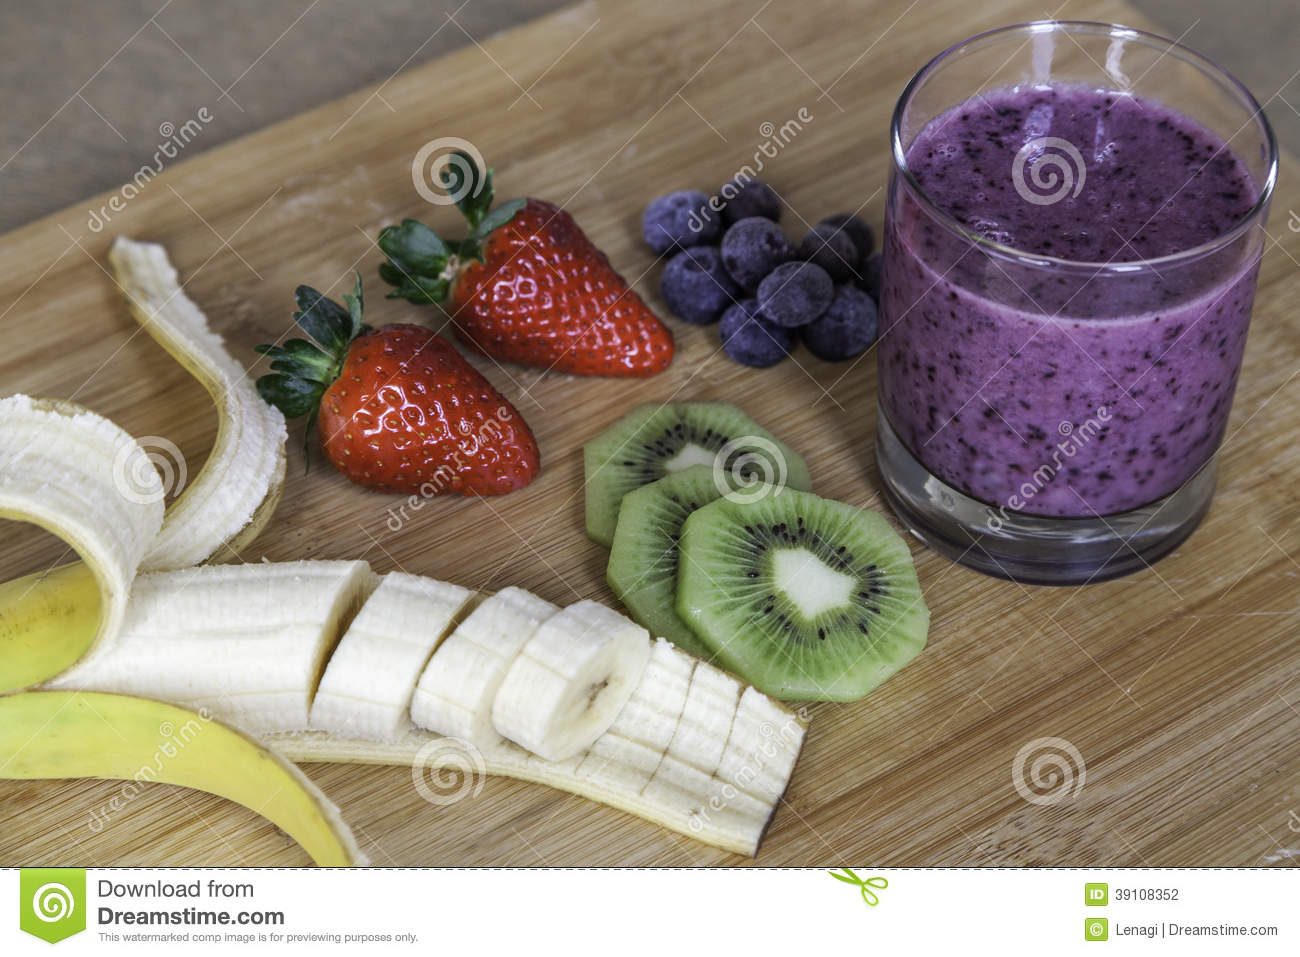 Bes smoothie